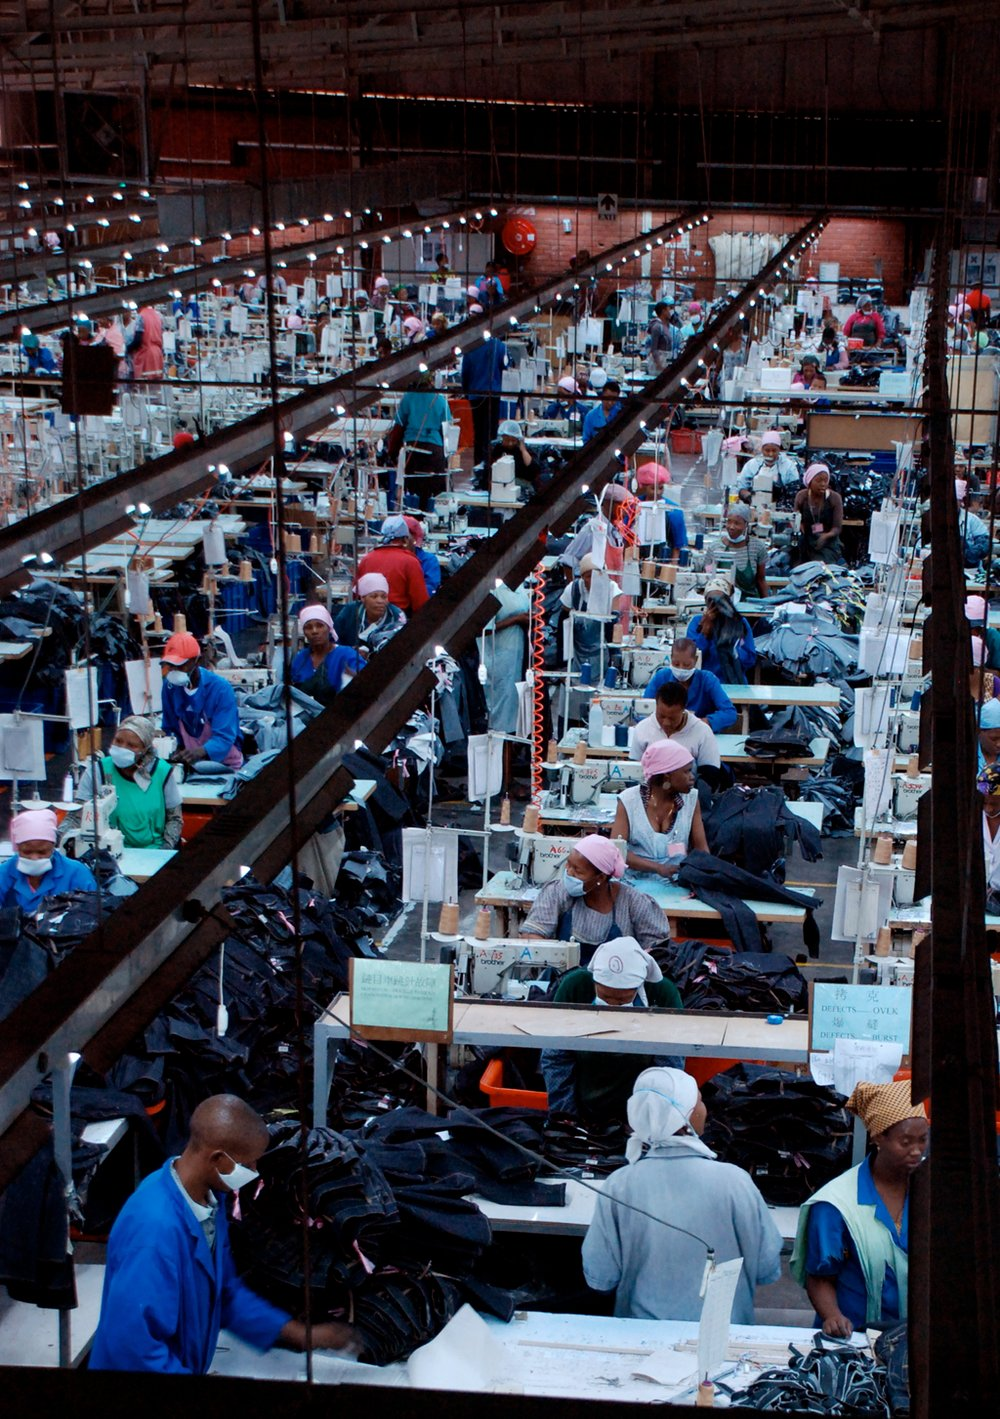 Lesotho's textile industry is the country's largest employer and constitutes close to 20 percent of GDP